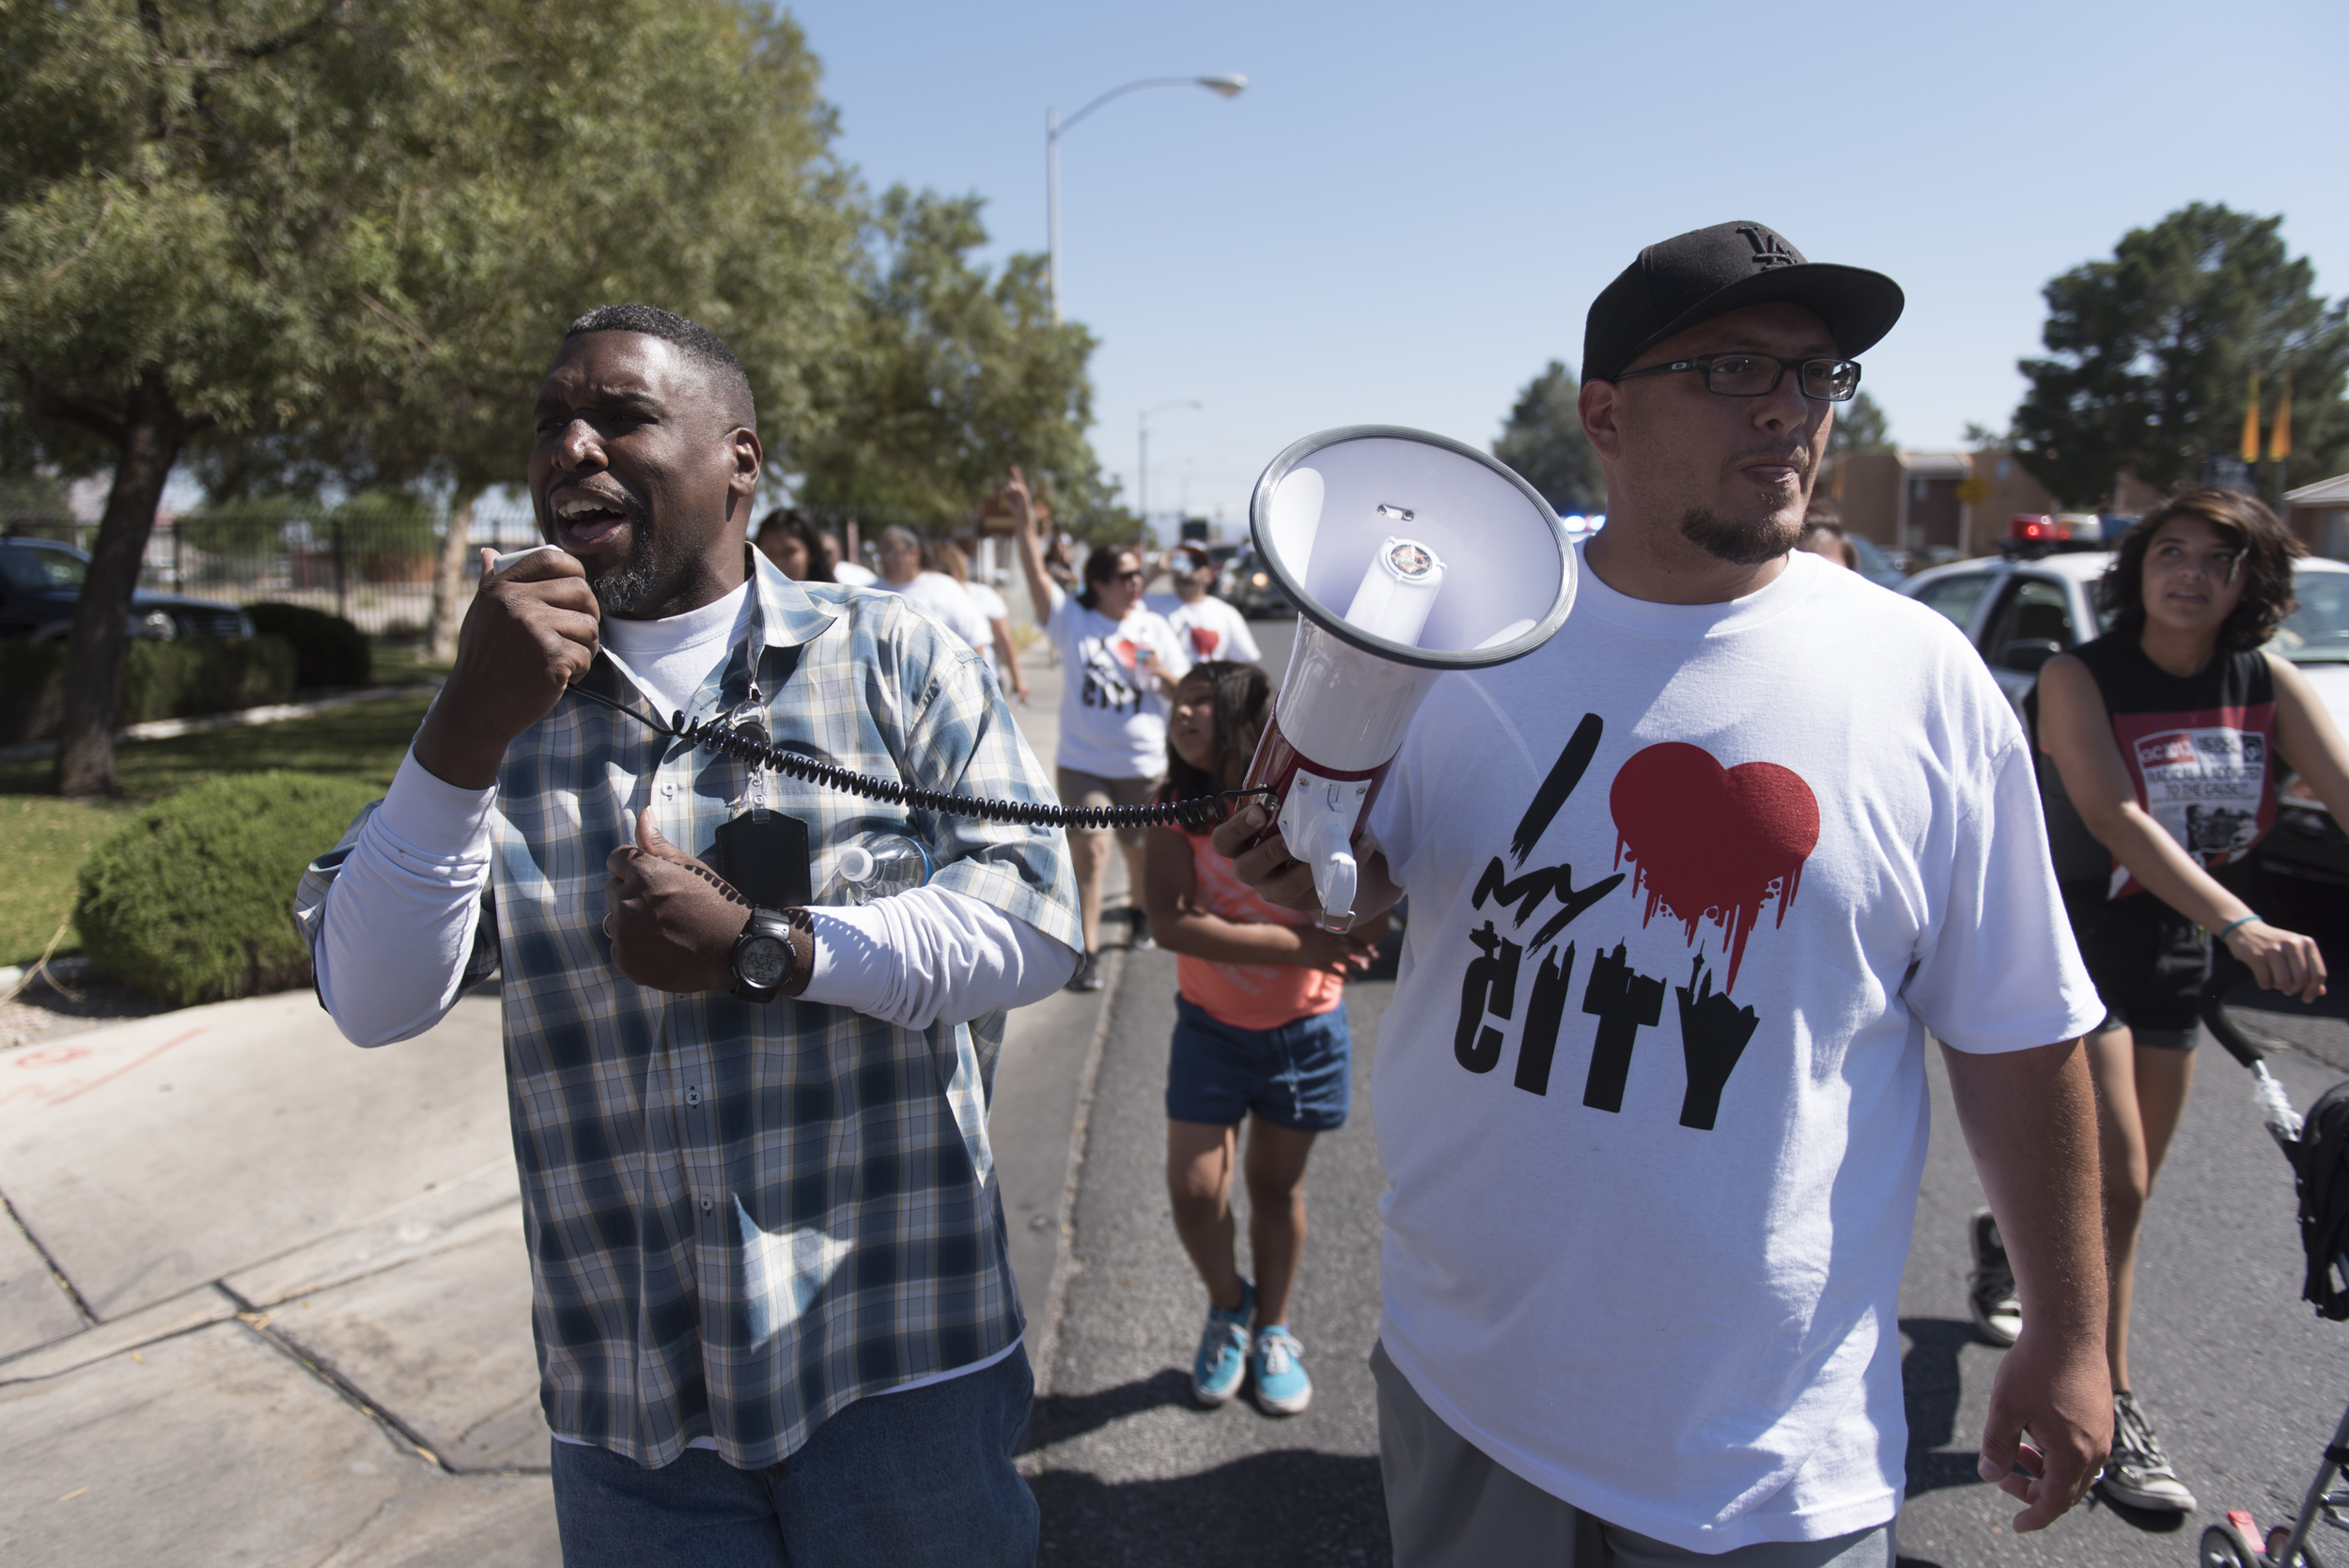 Marchers who have gathered for the I Love My City March walk along Nellis Boulevard, heading towards the closed Walmart at Craig Road in Las Vegas on Saturday, May 21, 2016. (Jason Ogulnik/Las Vegas Review-Journal)